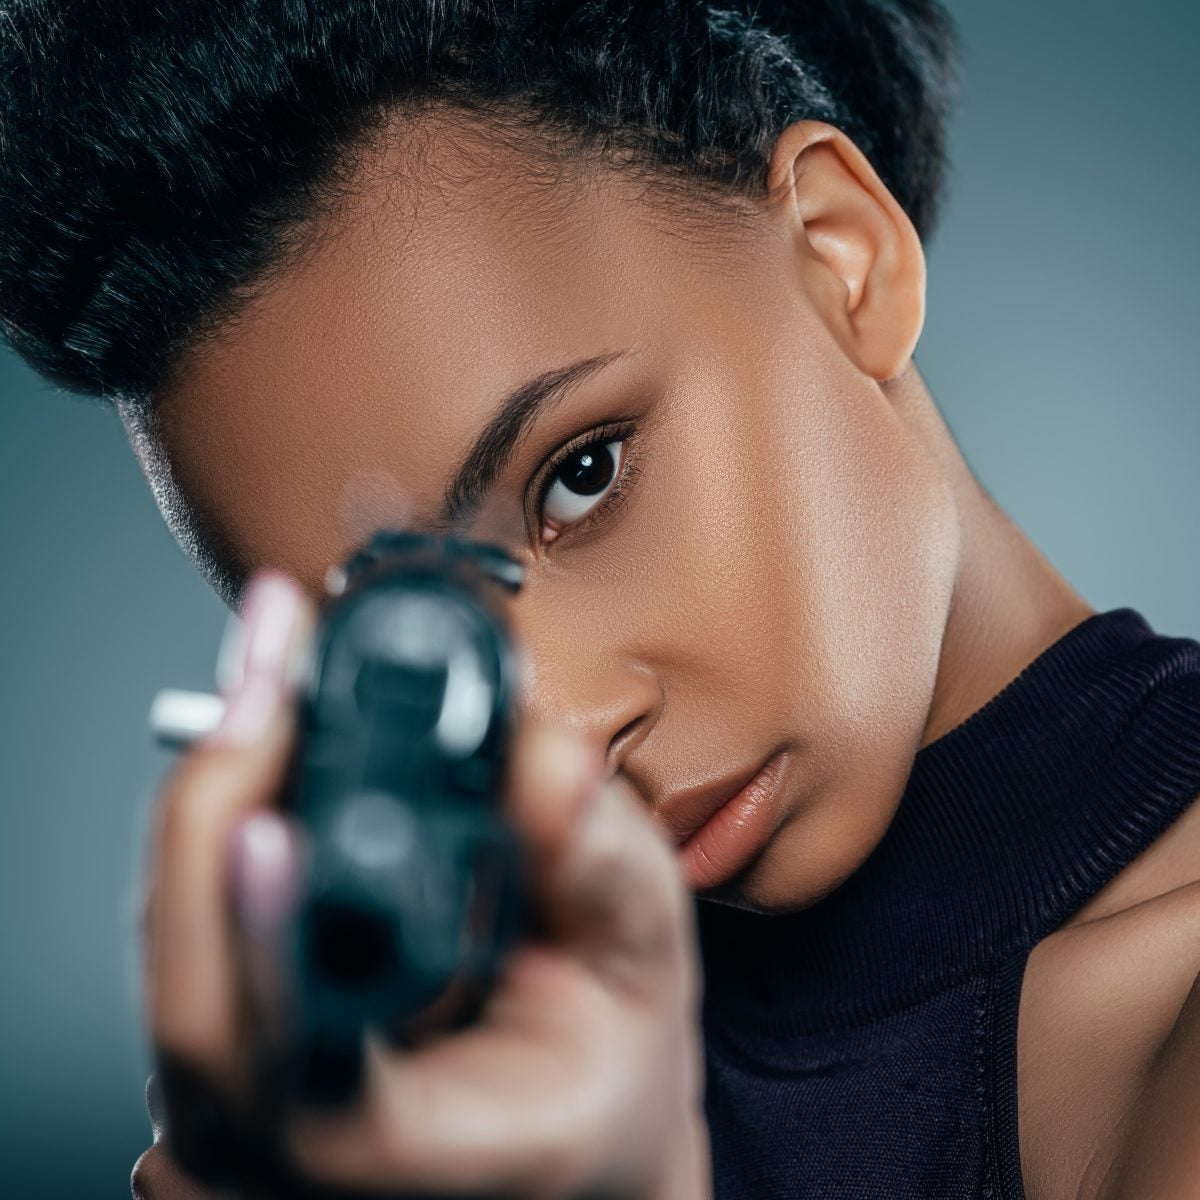 As A Black Woman In This Country, I Feel I Need To Bear Arms